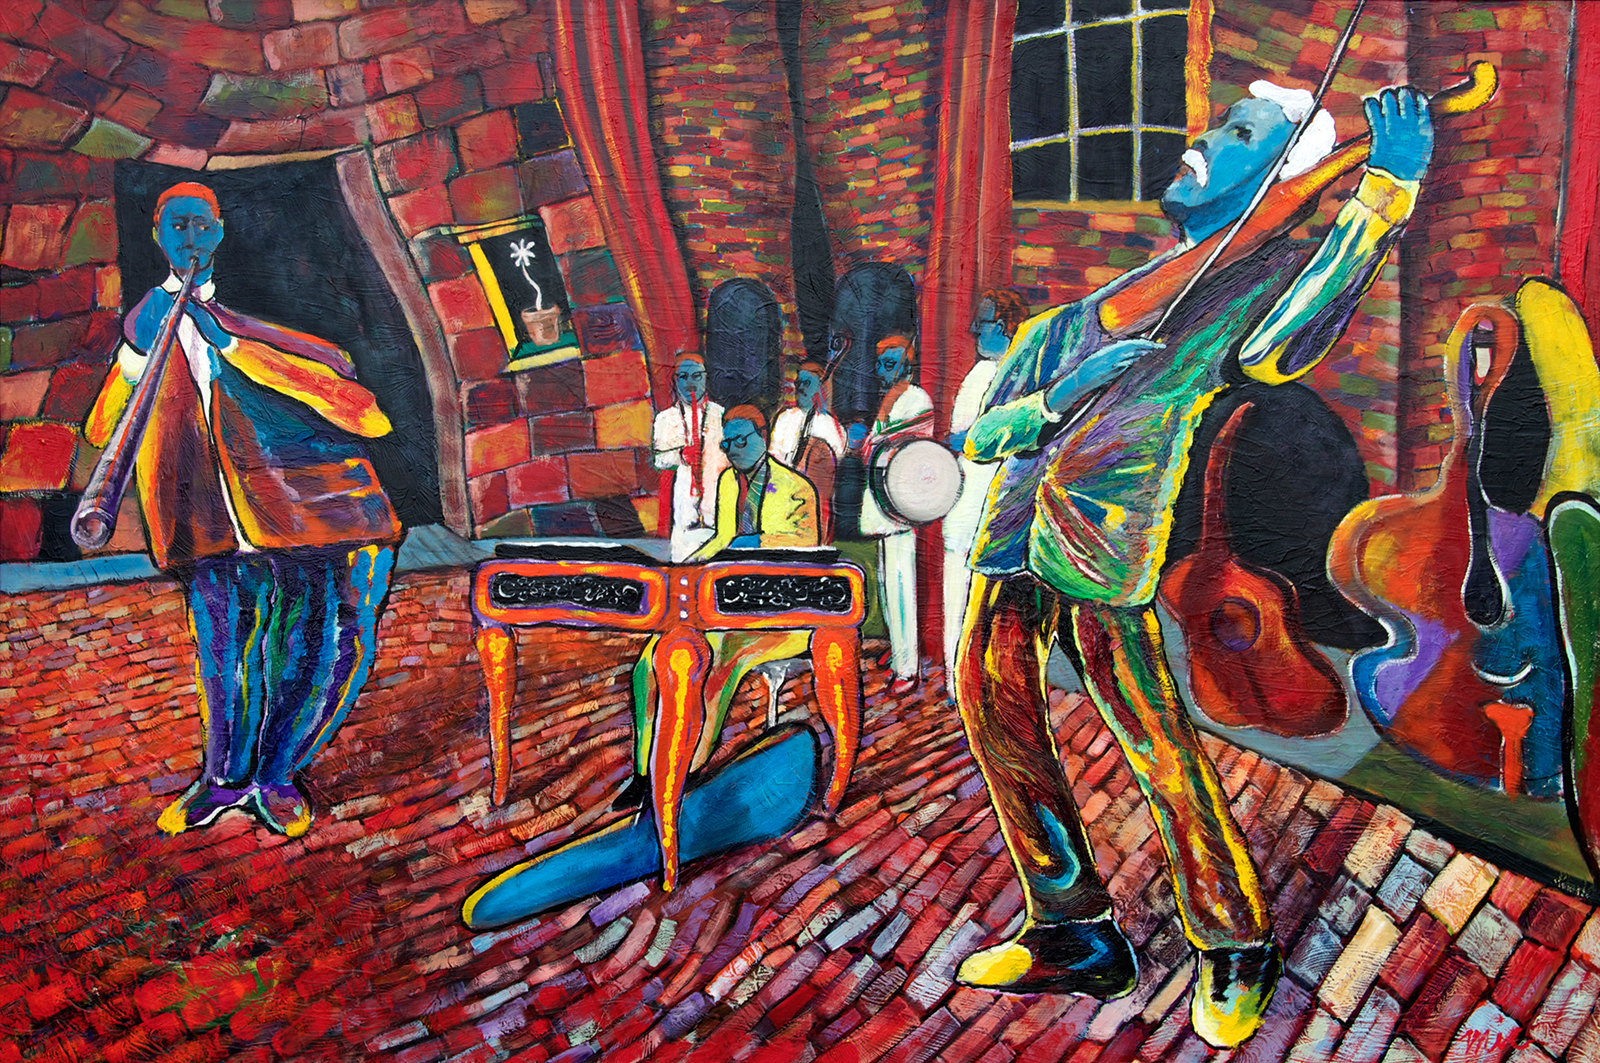 """""""Russian Street Band"""" Utrecht, Netherlands - Oil on Panel Private collection Jill Greenop and Duffy MaginGiclee Limited Edition and canvas prints are available. Please visit the prints gallery."""